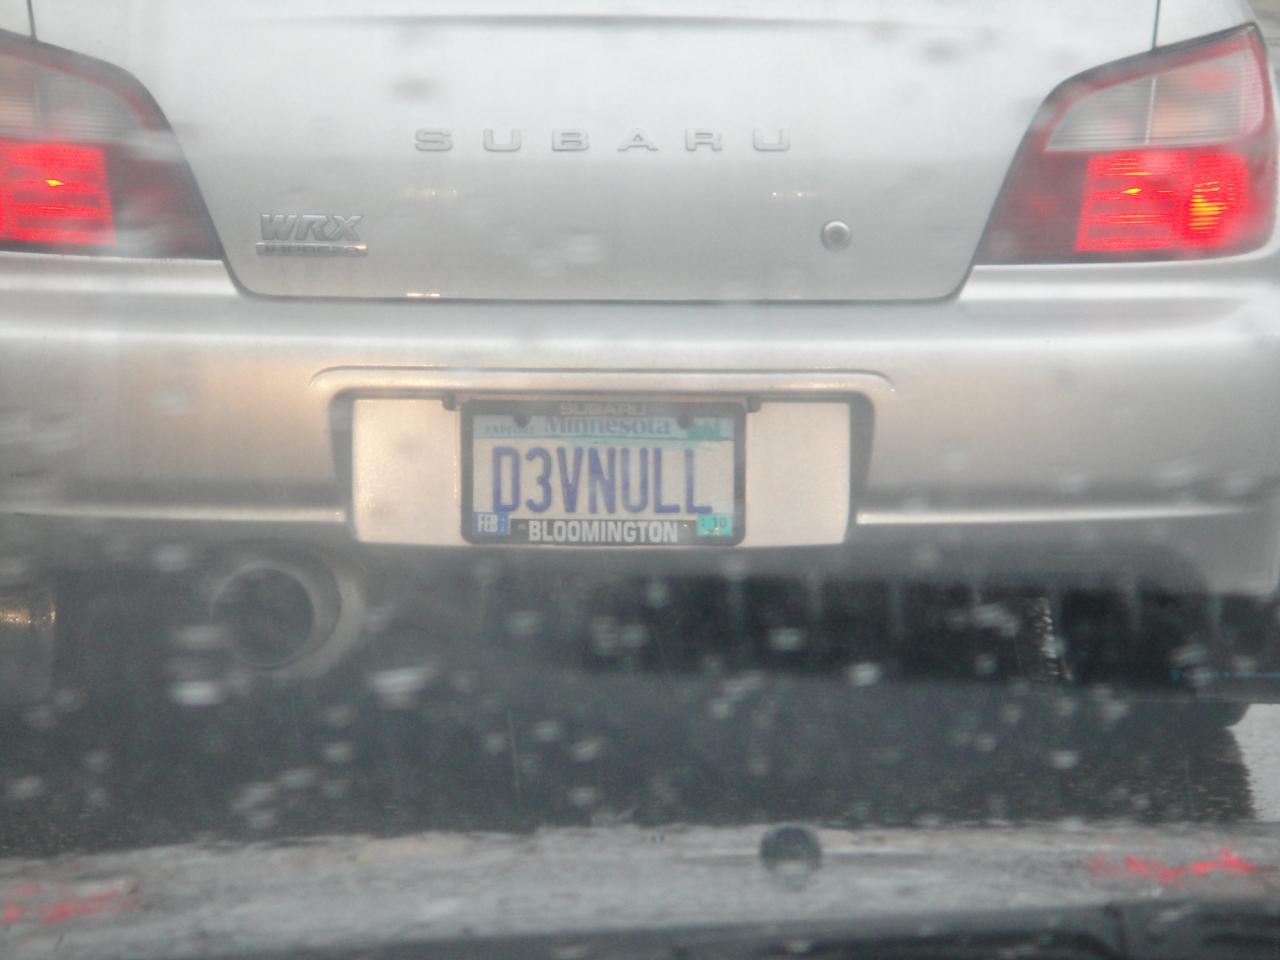 D3vNull License Plate for Hackers